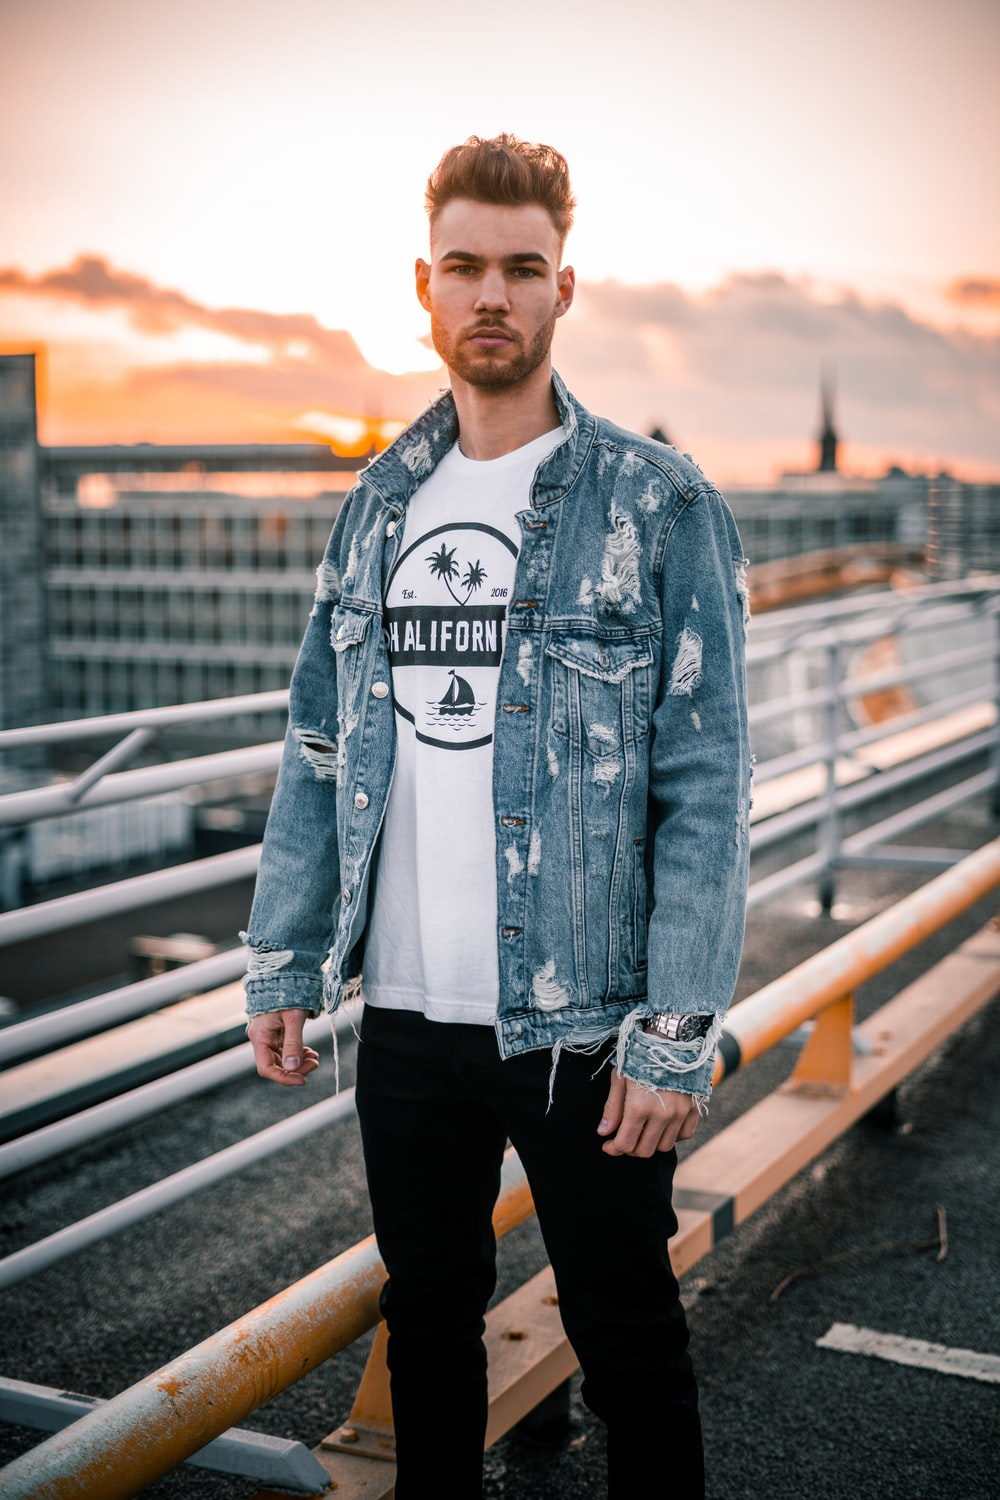 man in blue denim jacket standing on bridge during daytime